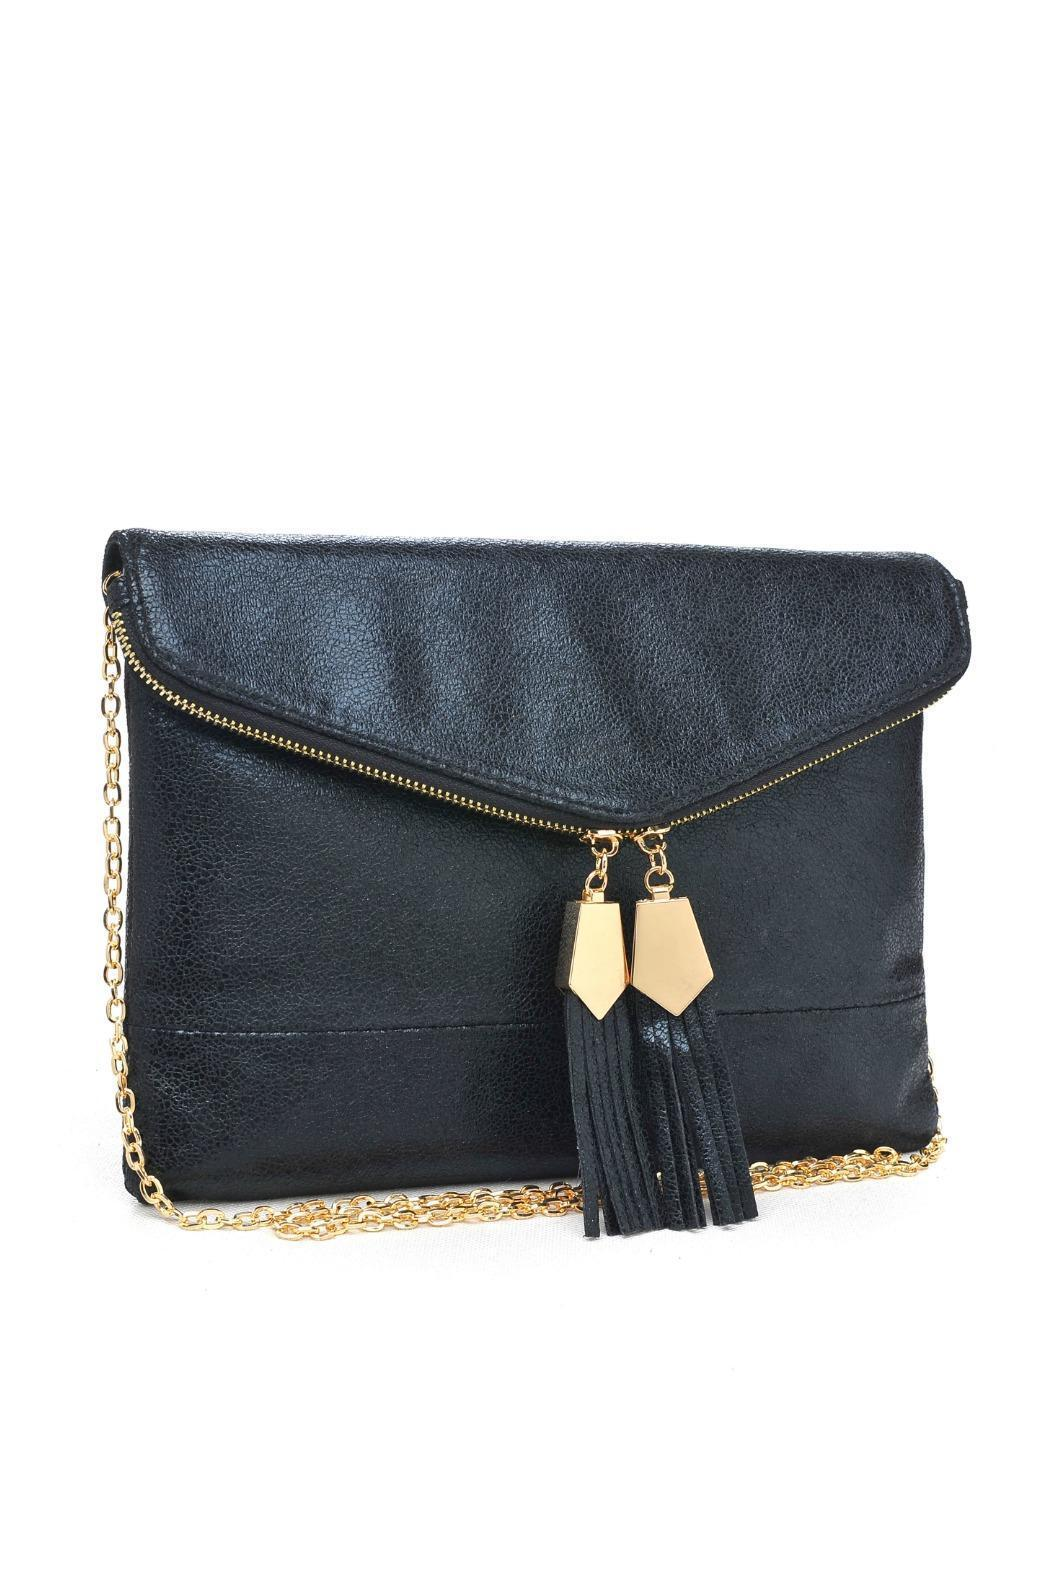 Urban Expressions Brooklyn Envelope Clutch - Back Cropped Image